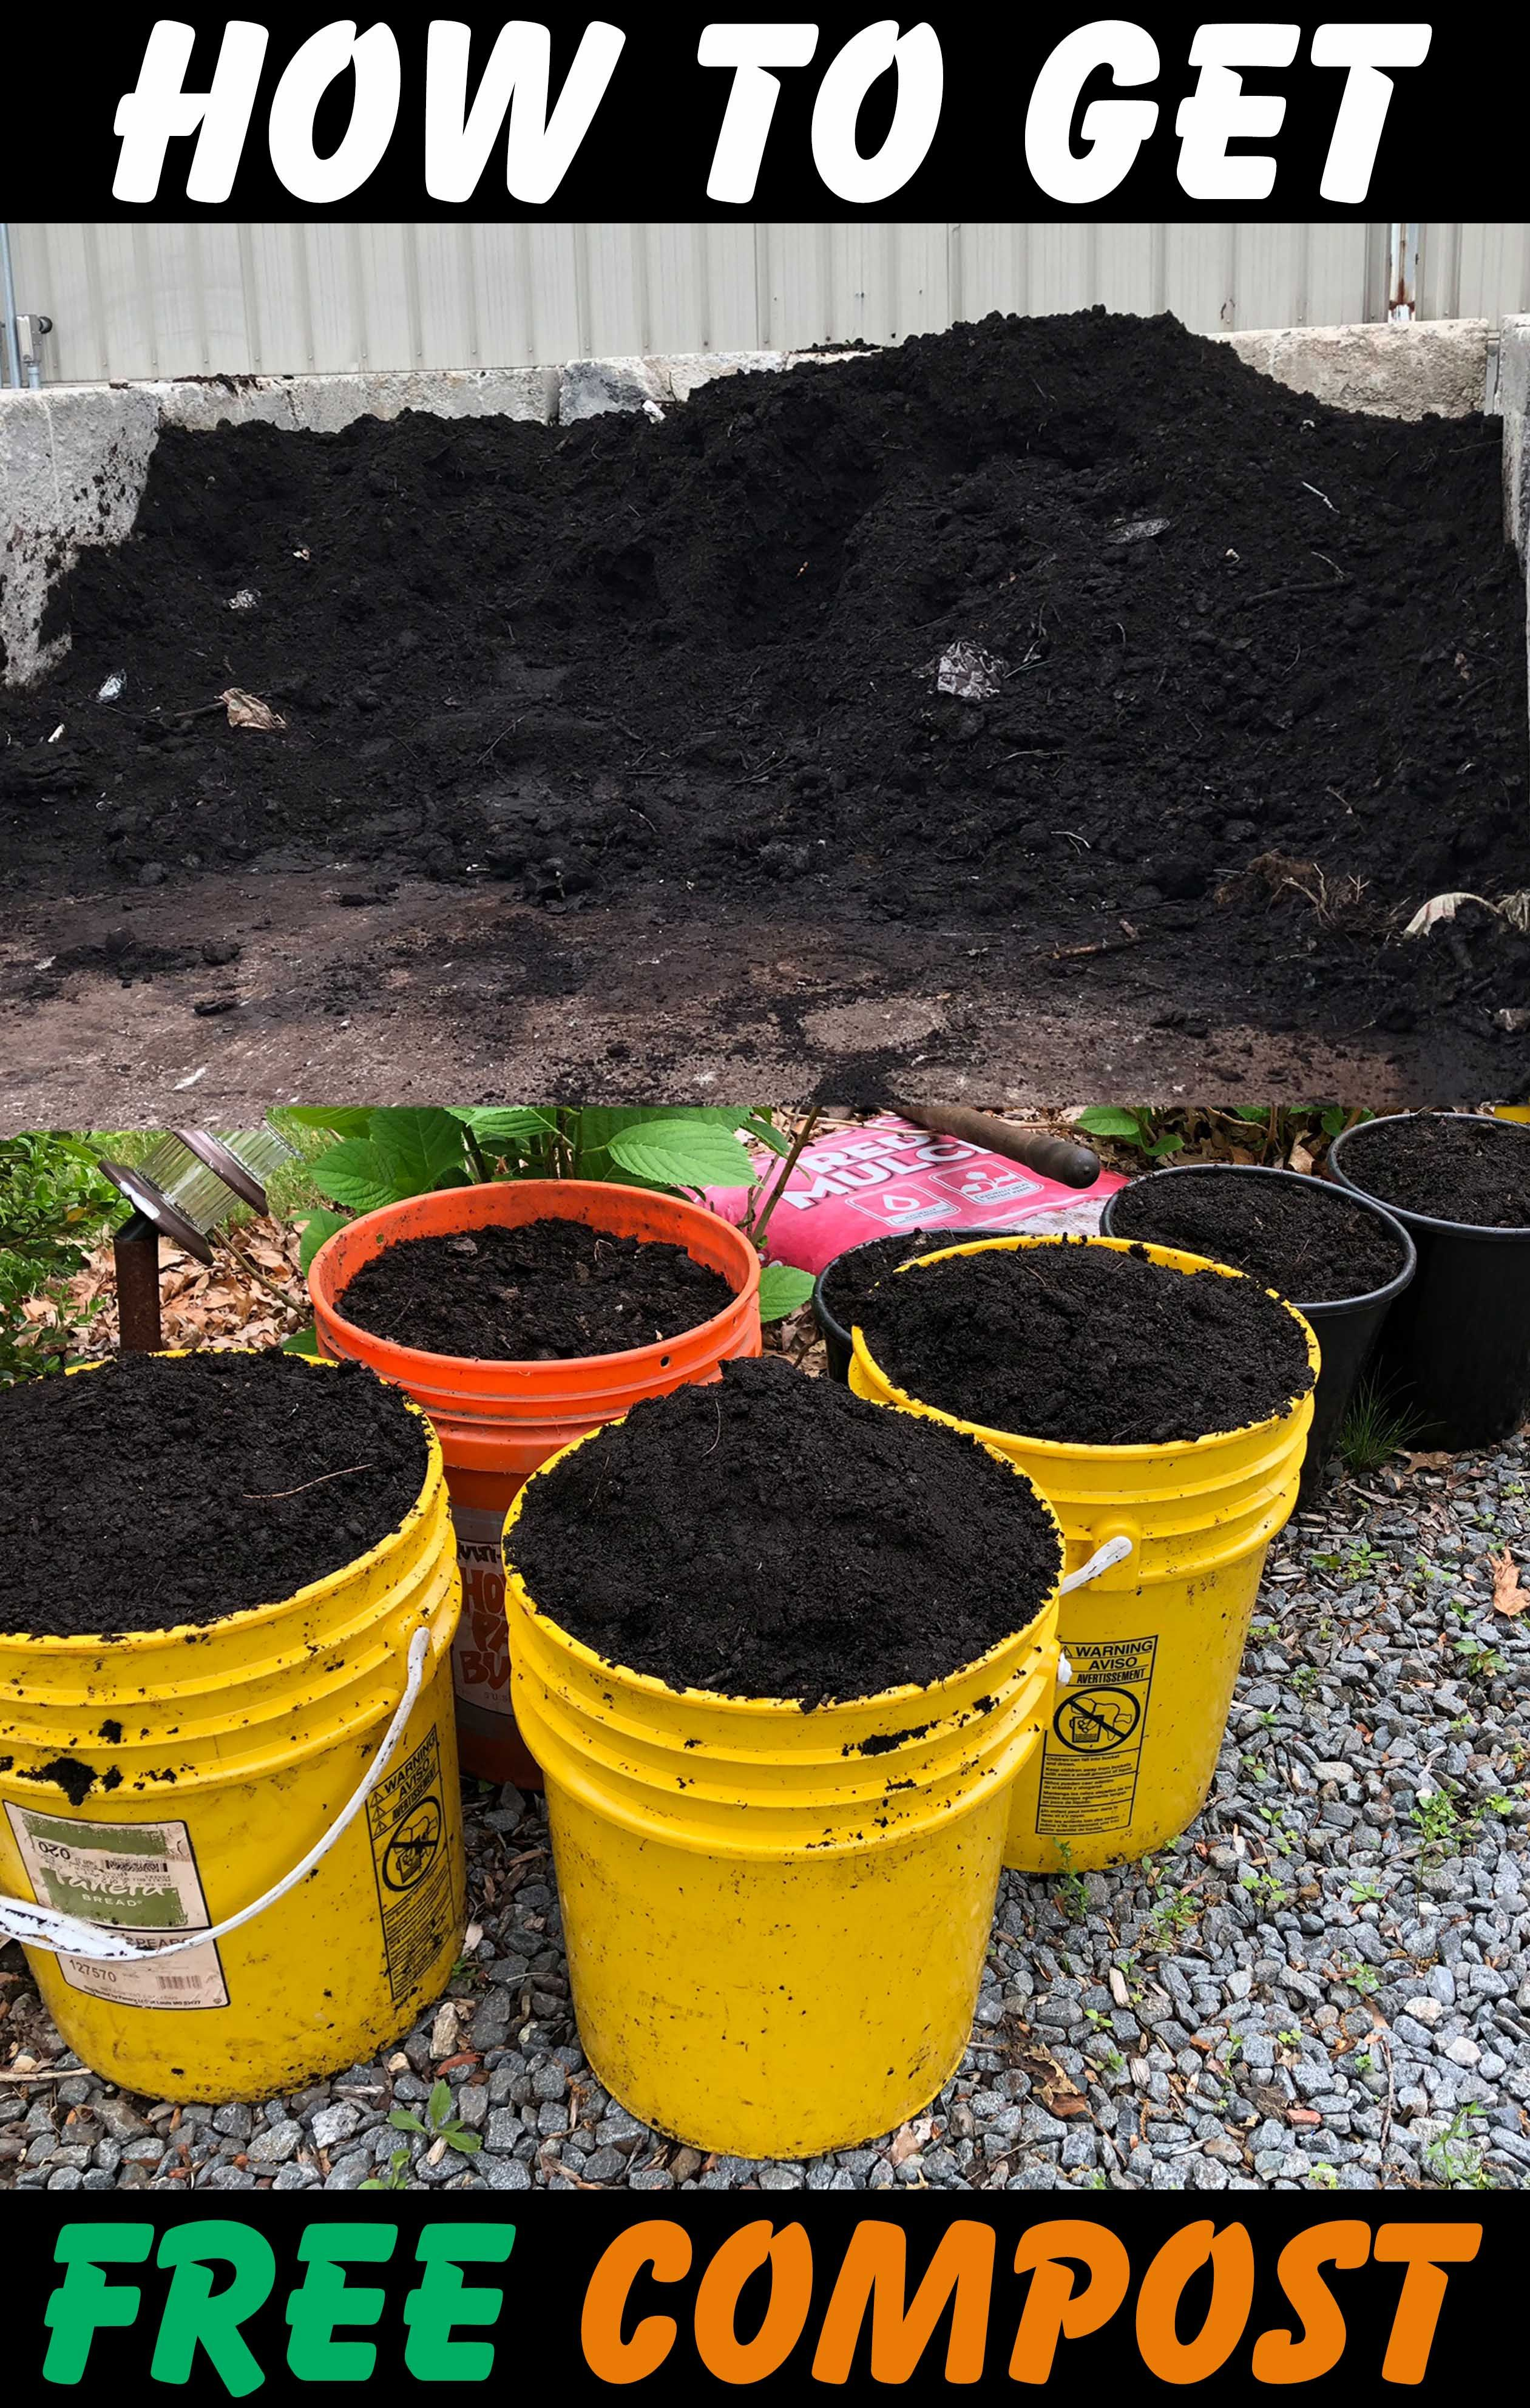 Free compost near me. Here is how you can get free organic